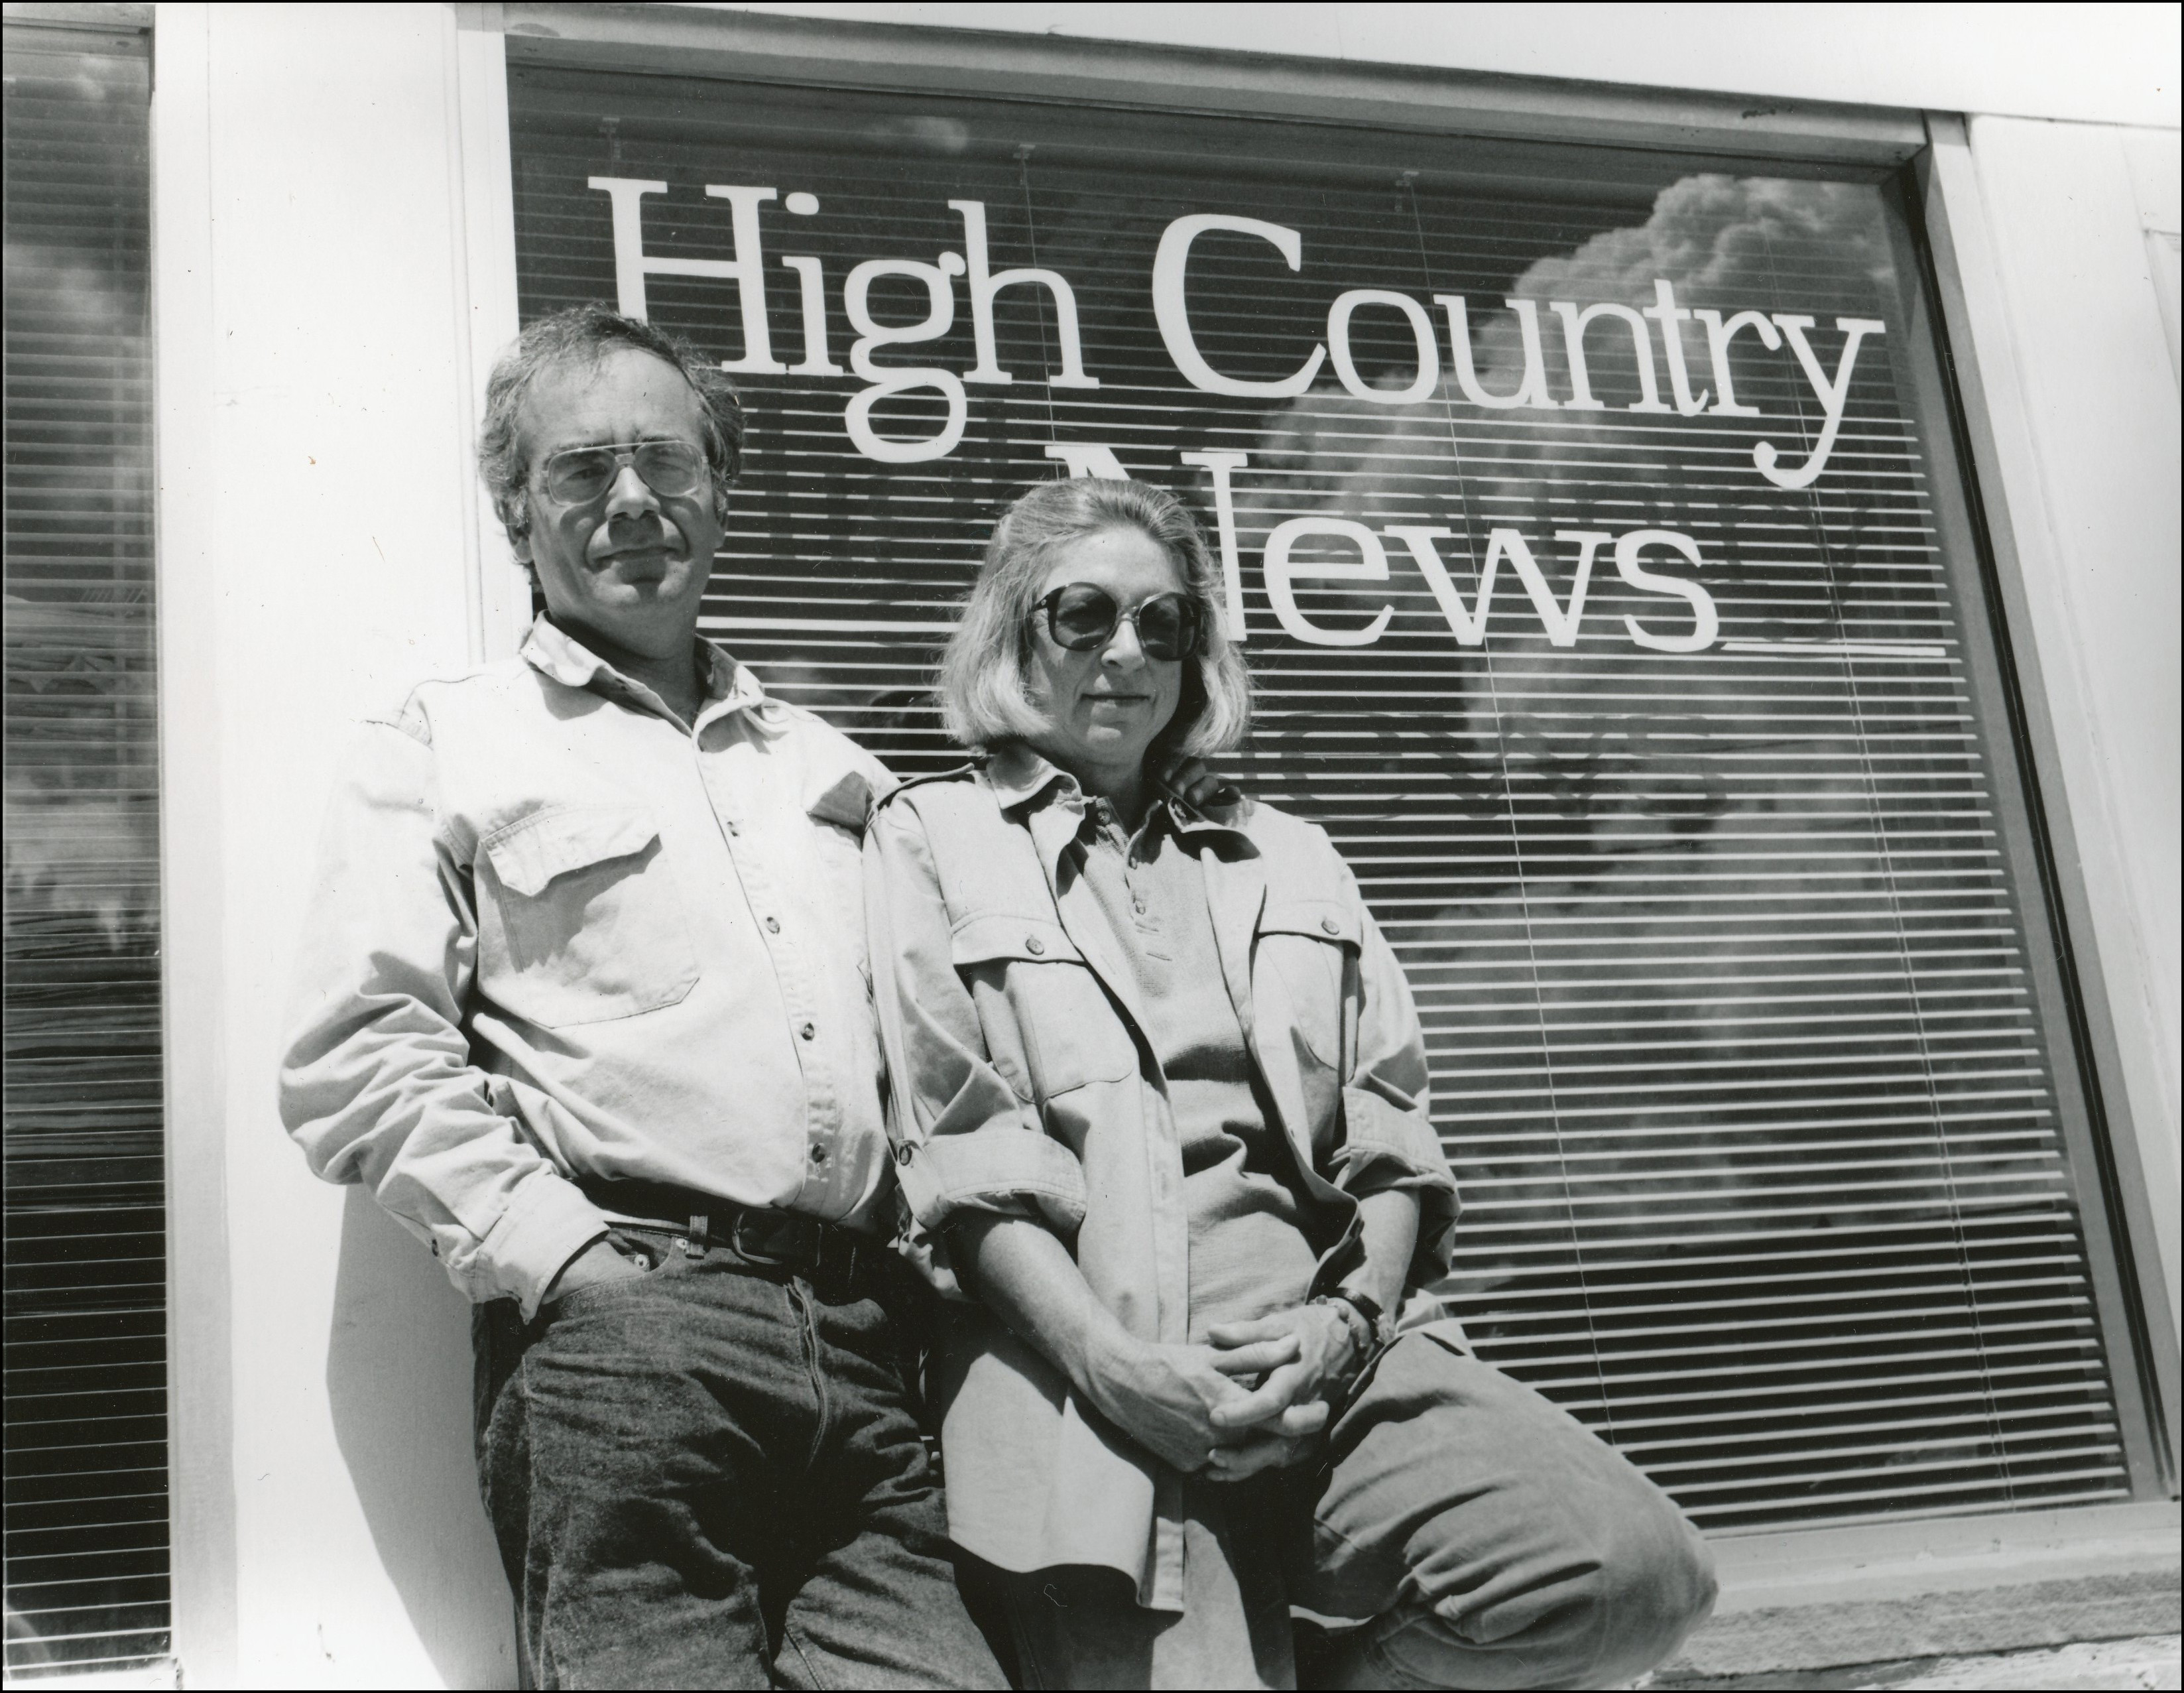 Couple standing in front of window that says High Country News